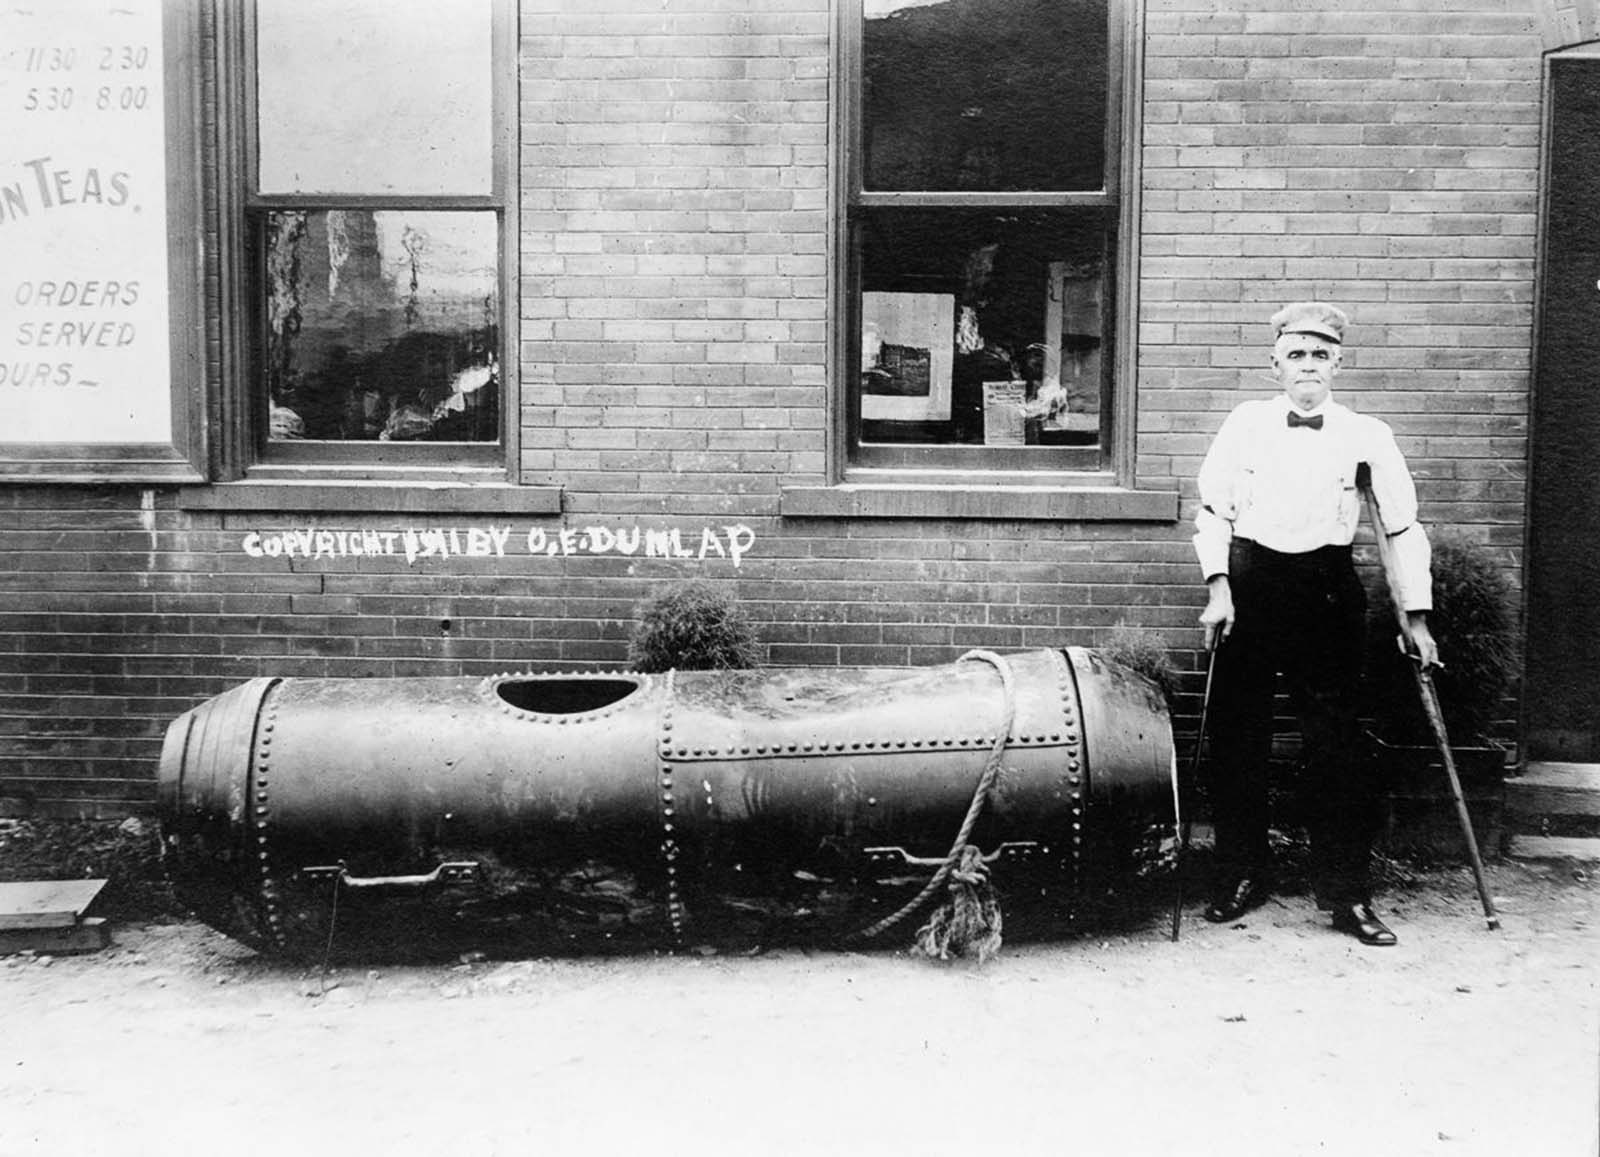 Bobby Leach, the second person to survive a trip over the falls, with the barrel he used to do it. 1911.